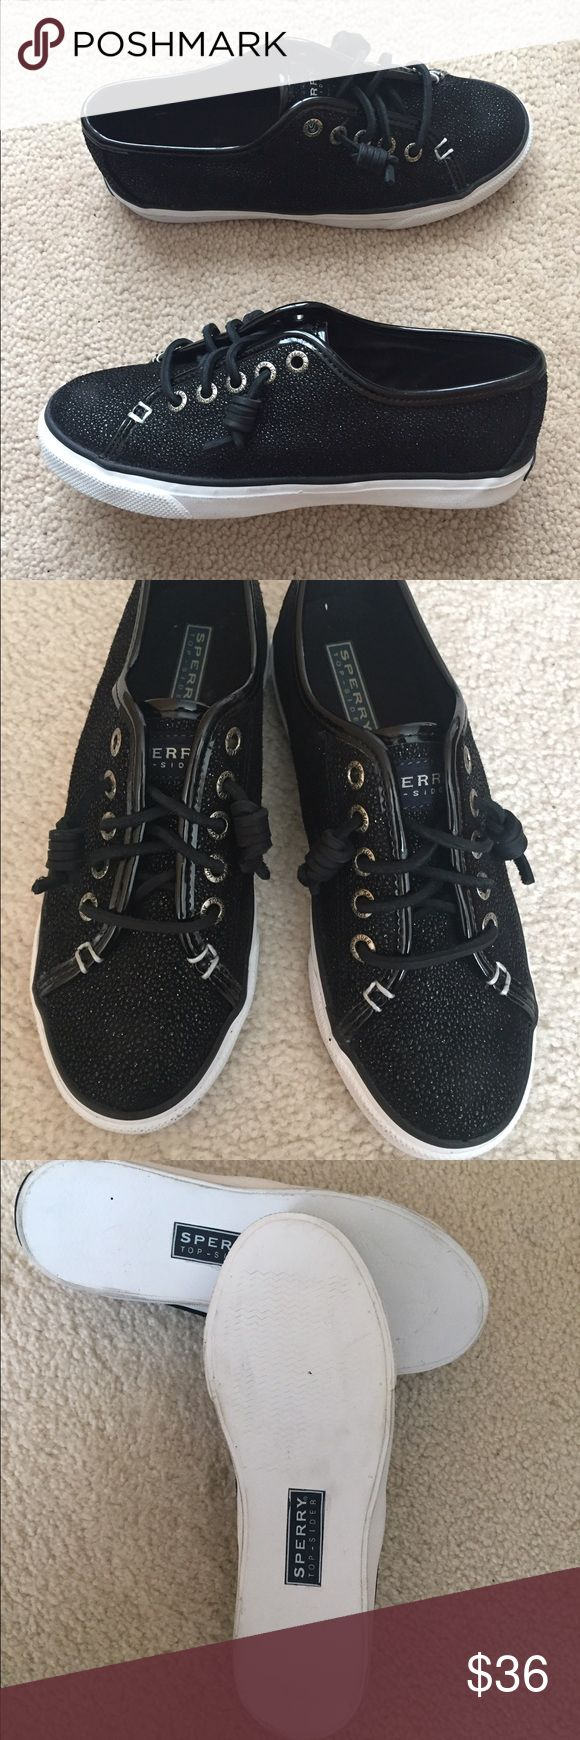 Sperry Top Sider black leather women's 5.5 M New Sperry Top Sider black leather women's 5.5 M New Sperry Top-Sider Shoes Sneakers